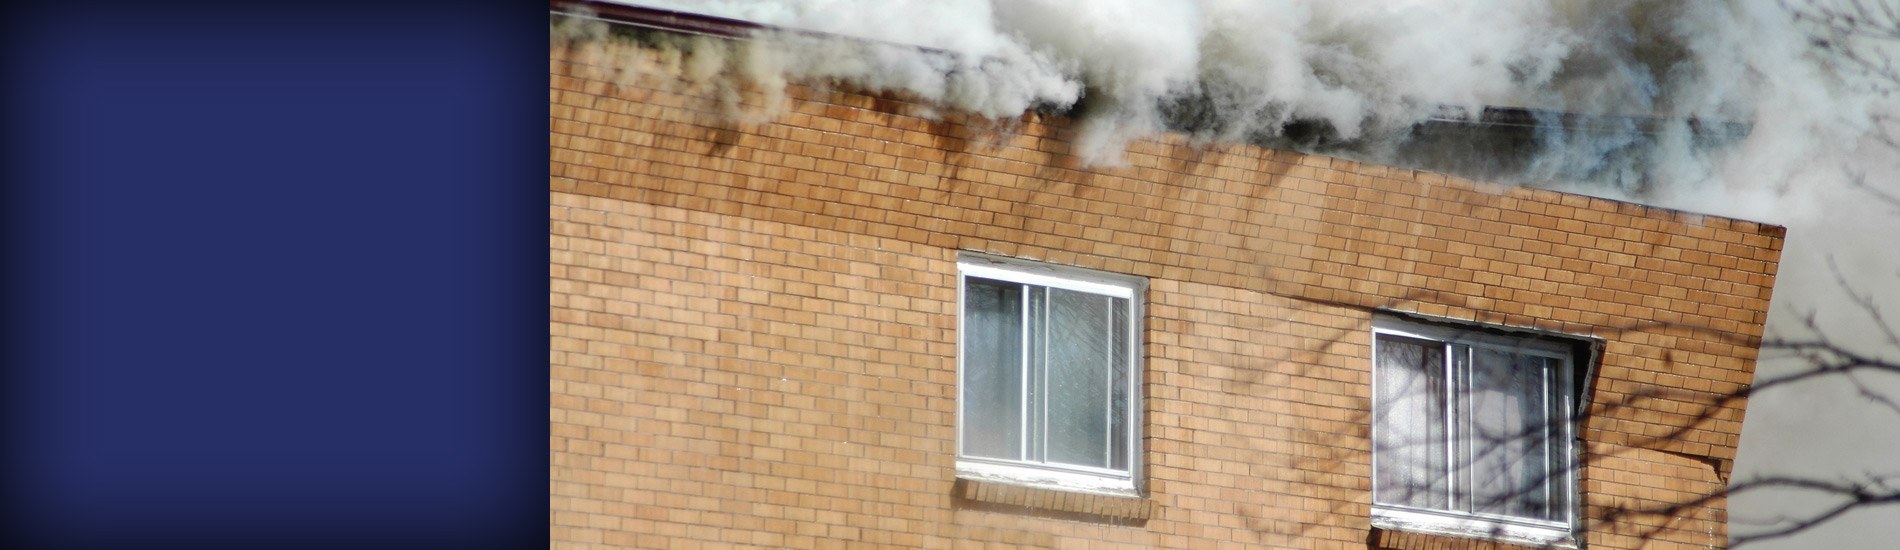 harris claims services slide smoke damage